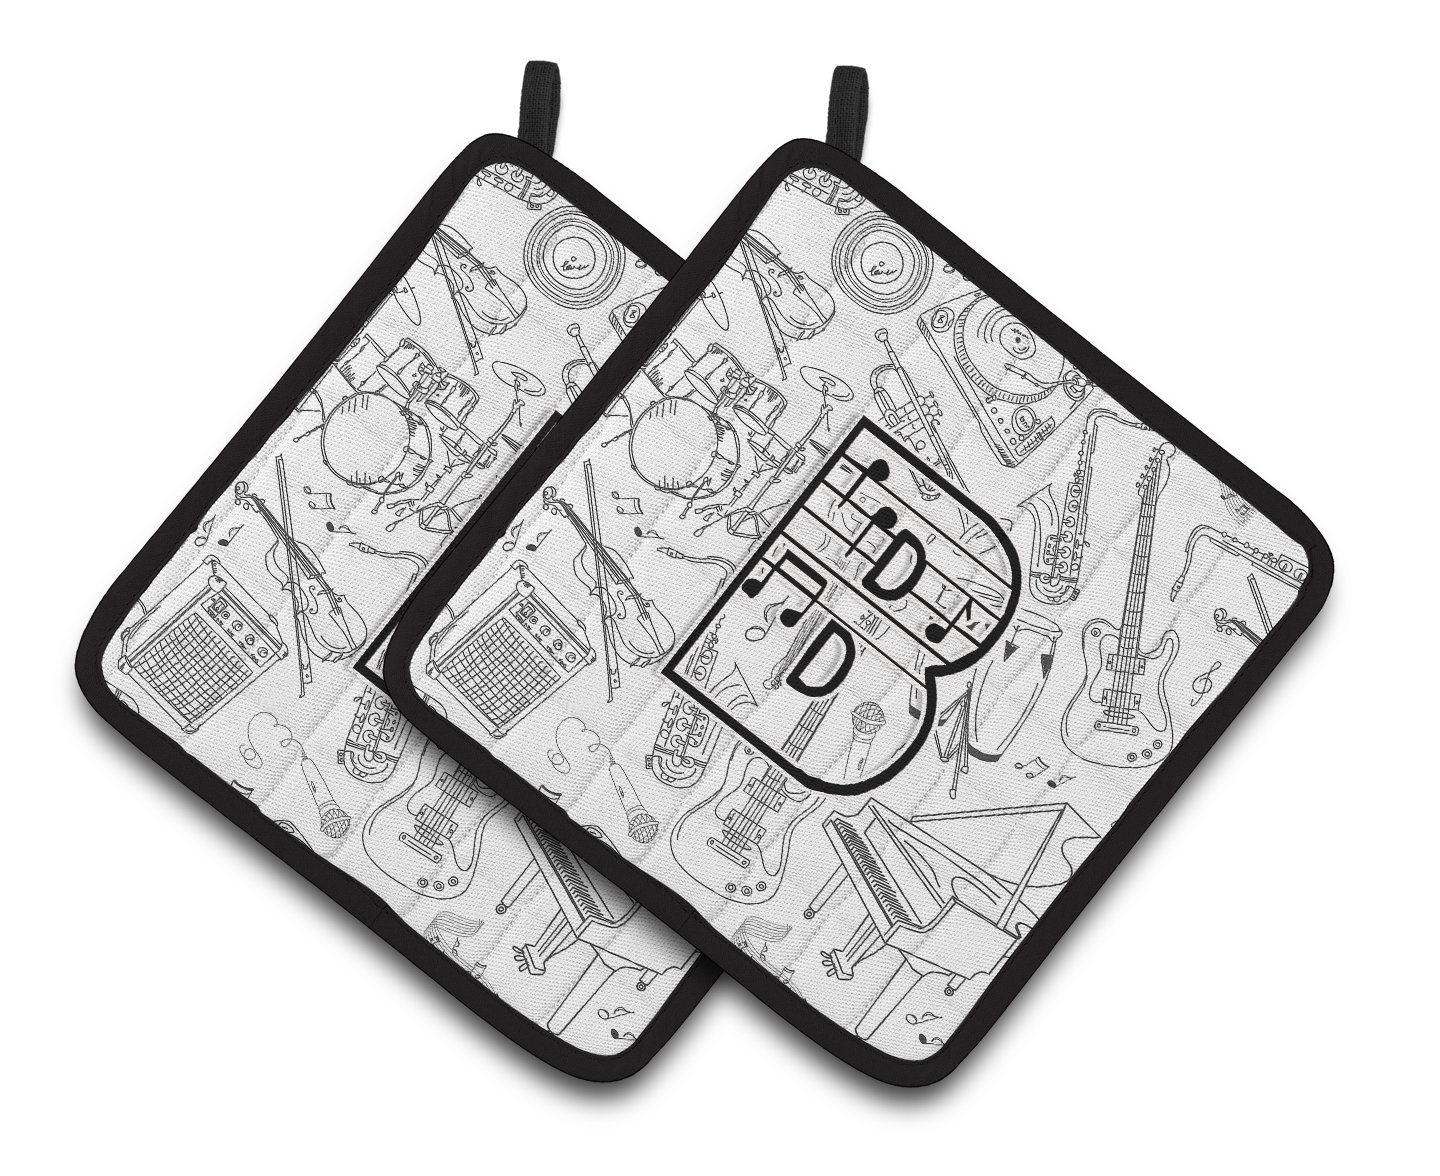 Carolines Treasures Letter B Musical Note Letters Pair of Pot Holders CJ2007-BPTHD 7.5HX7.5W Multicolor